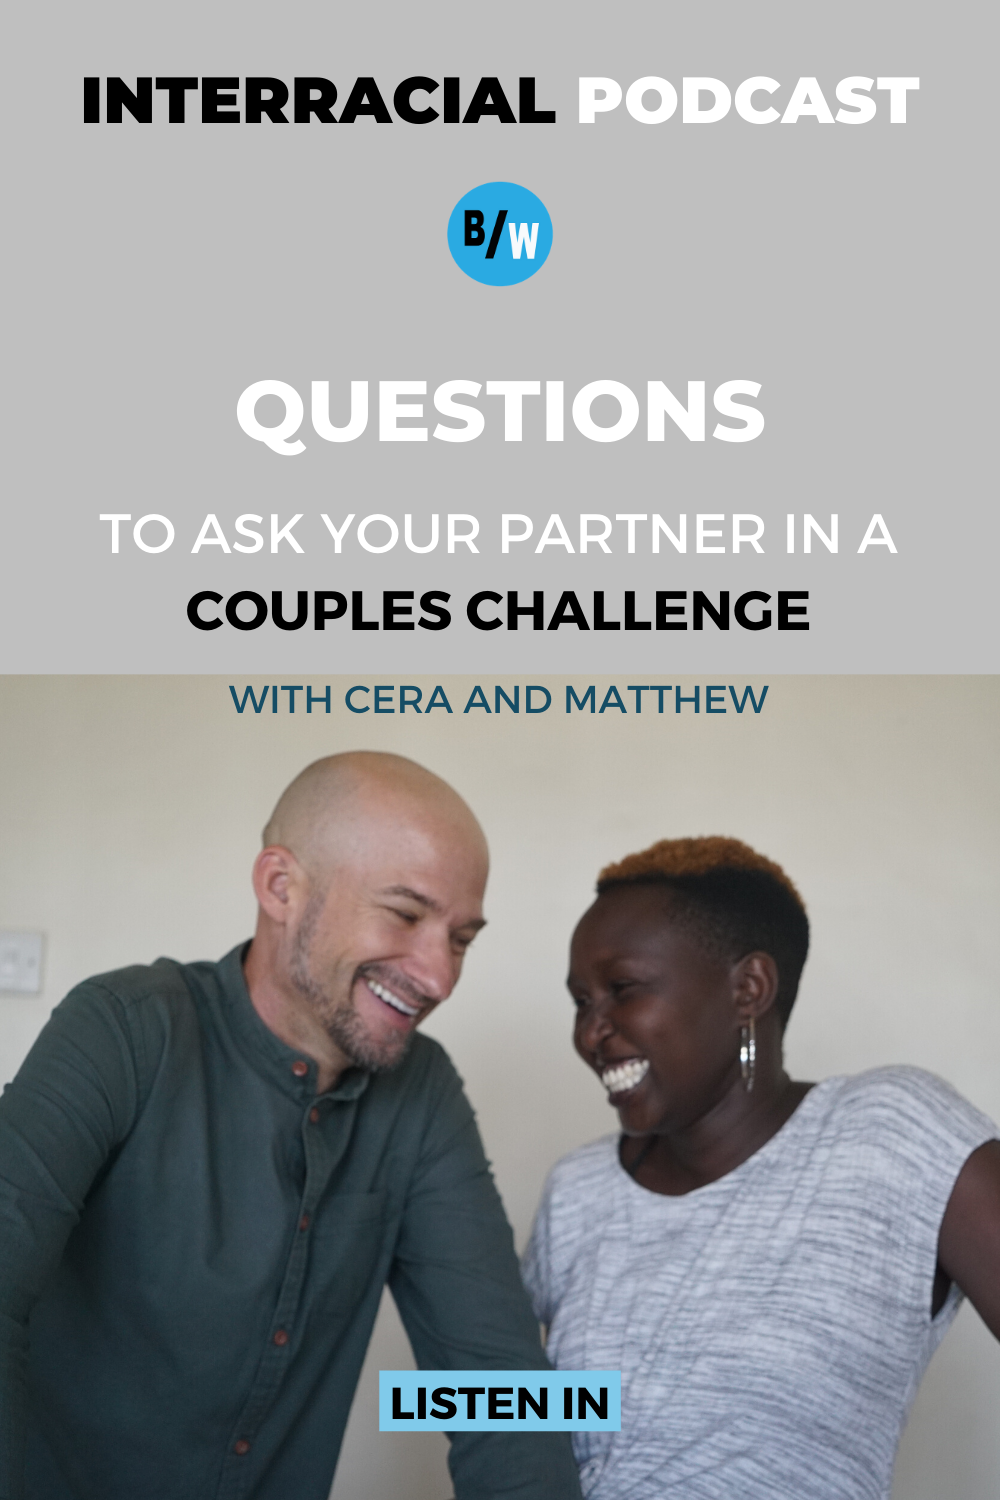 Tiktok Interracial Couples Challenge How Well We Know Each Other Black And White Love Interracial Couples Couples Challenges Interracial